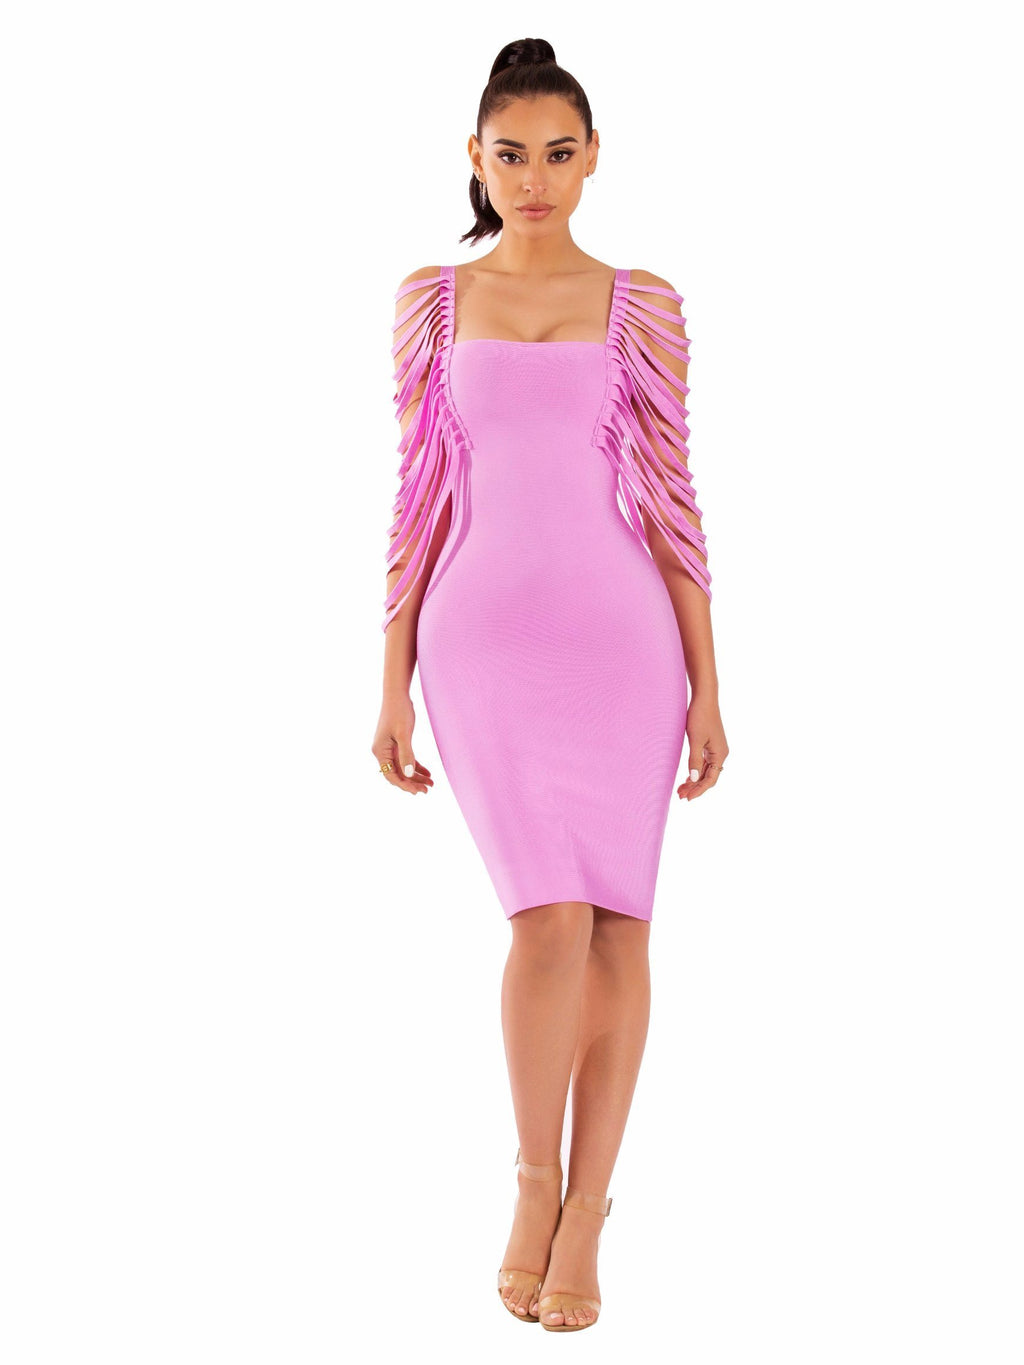 Blush Pink Jaris Fringe Sleeveless Bandage Dress - STEVEN WICK